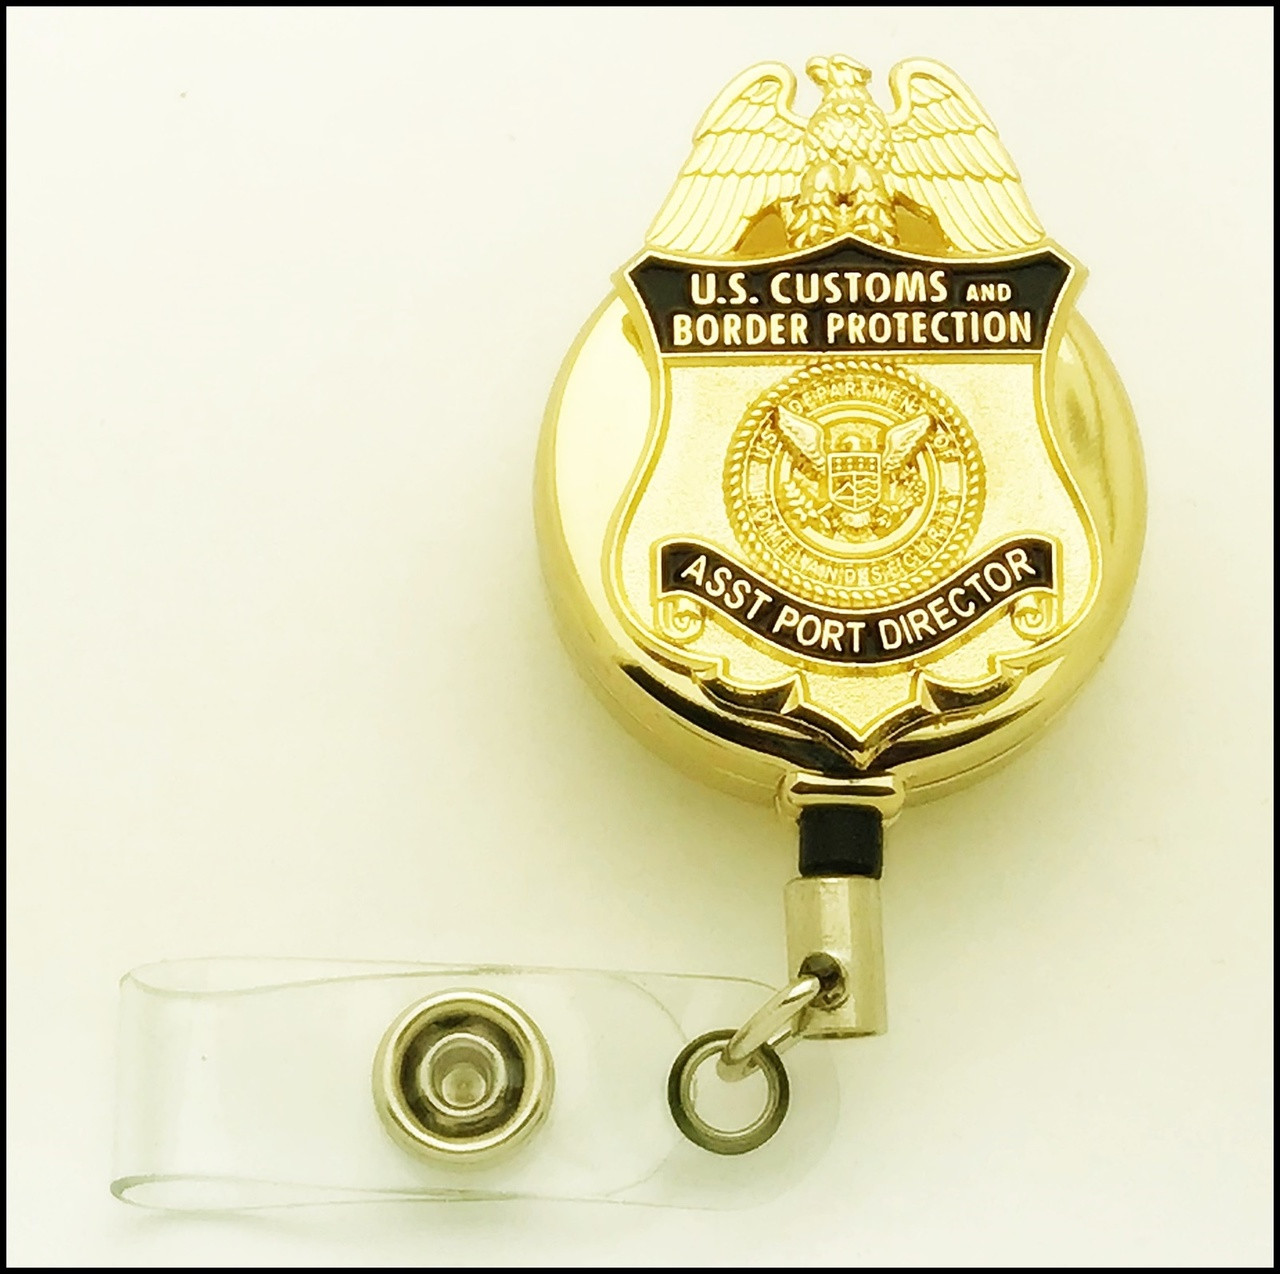 Customs and Border Protection Asst Port Director Mini Badge ID Holder | ID Reel